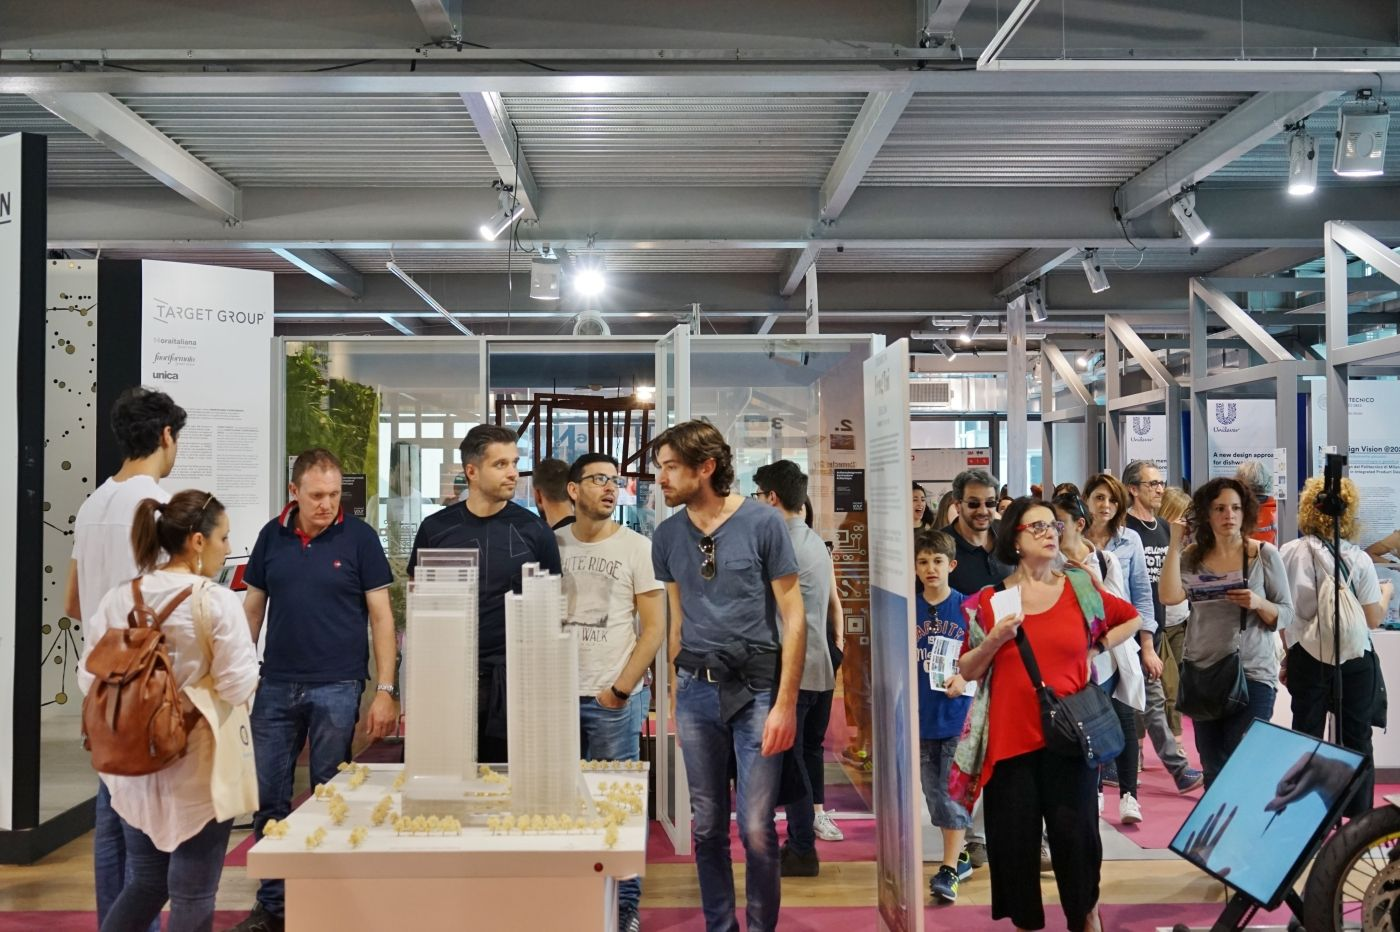 Elena Galimberti-Mostra Smart City 2018 (115)